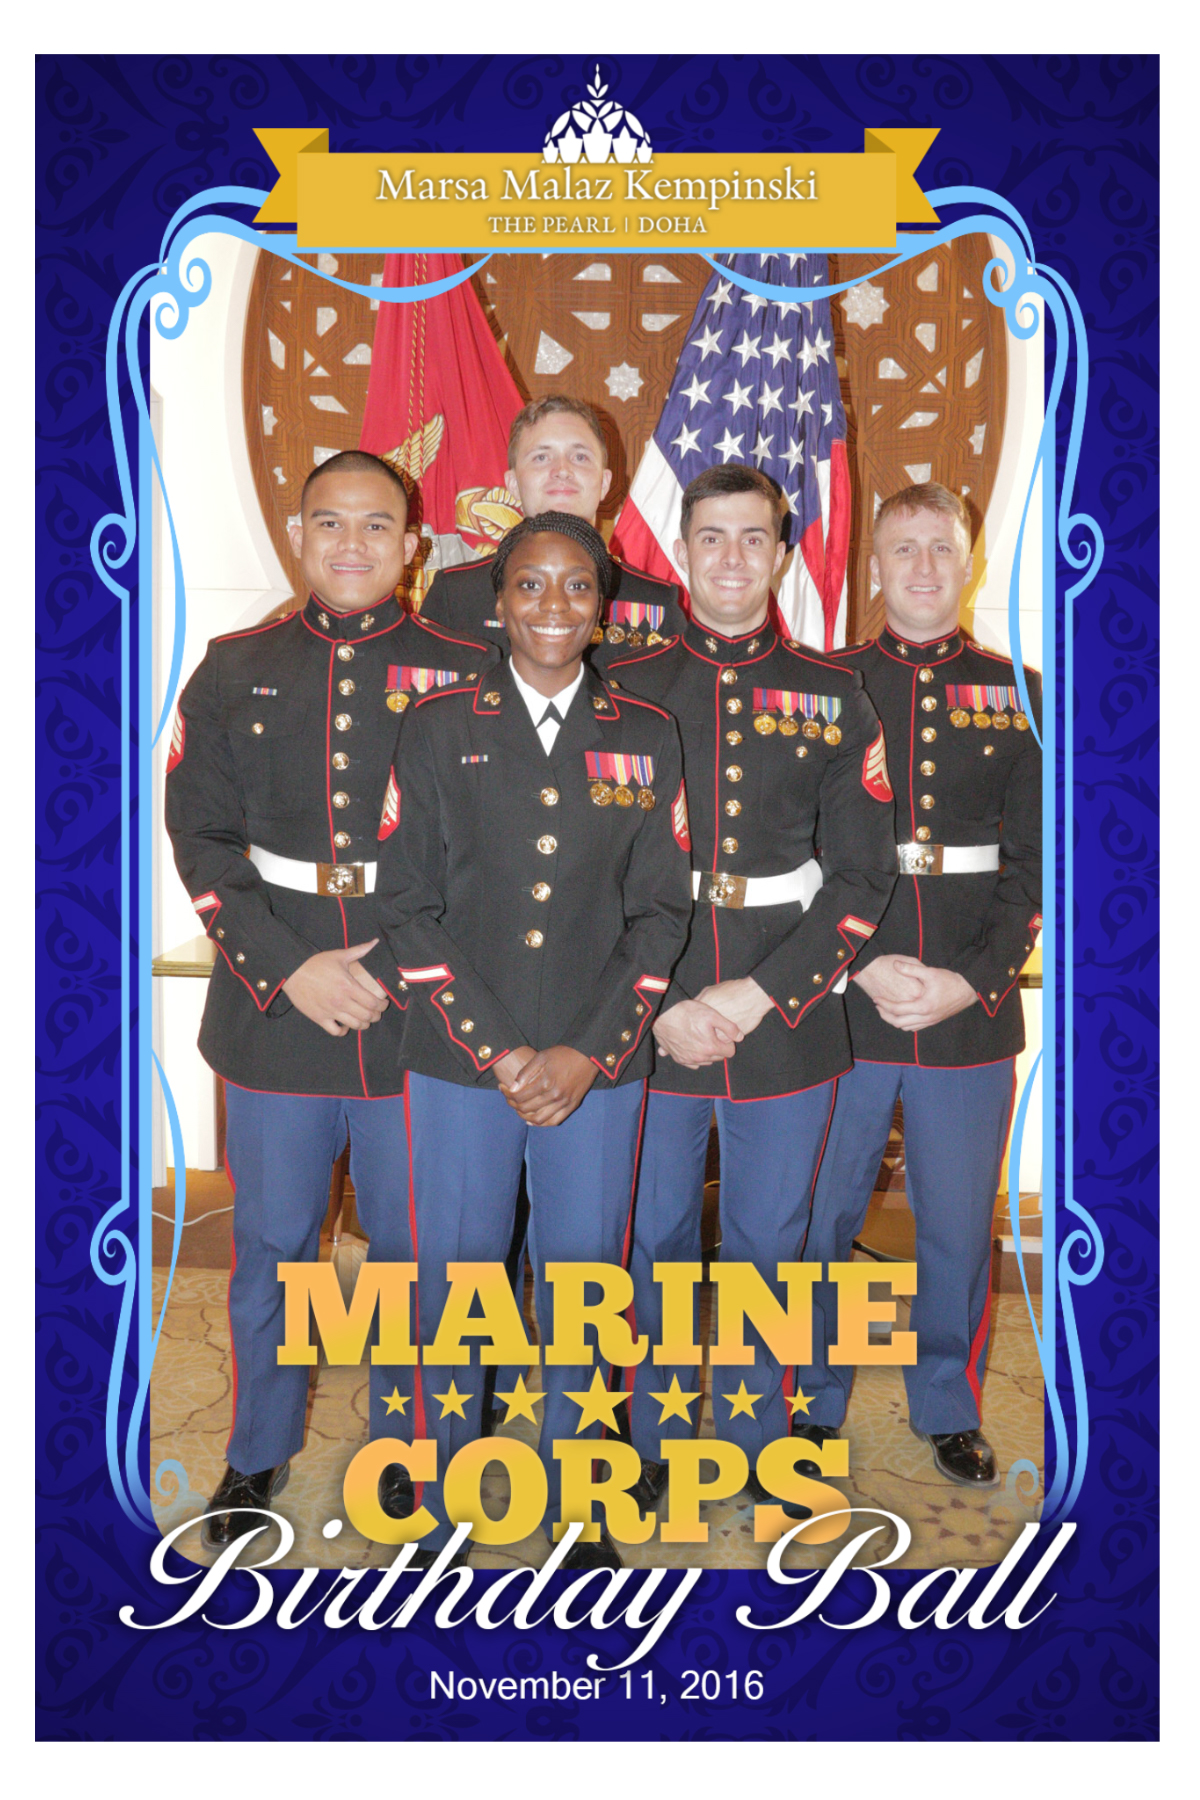 241st Marine Corps Birthday Ball